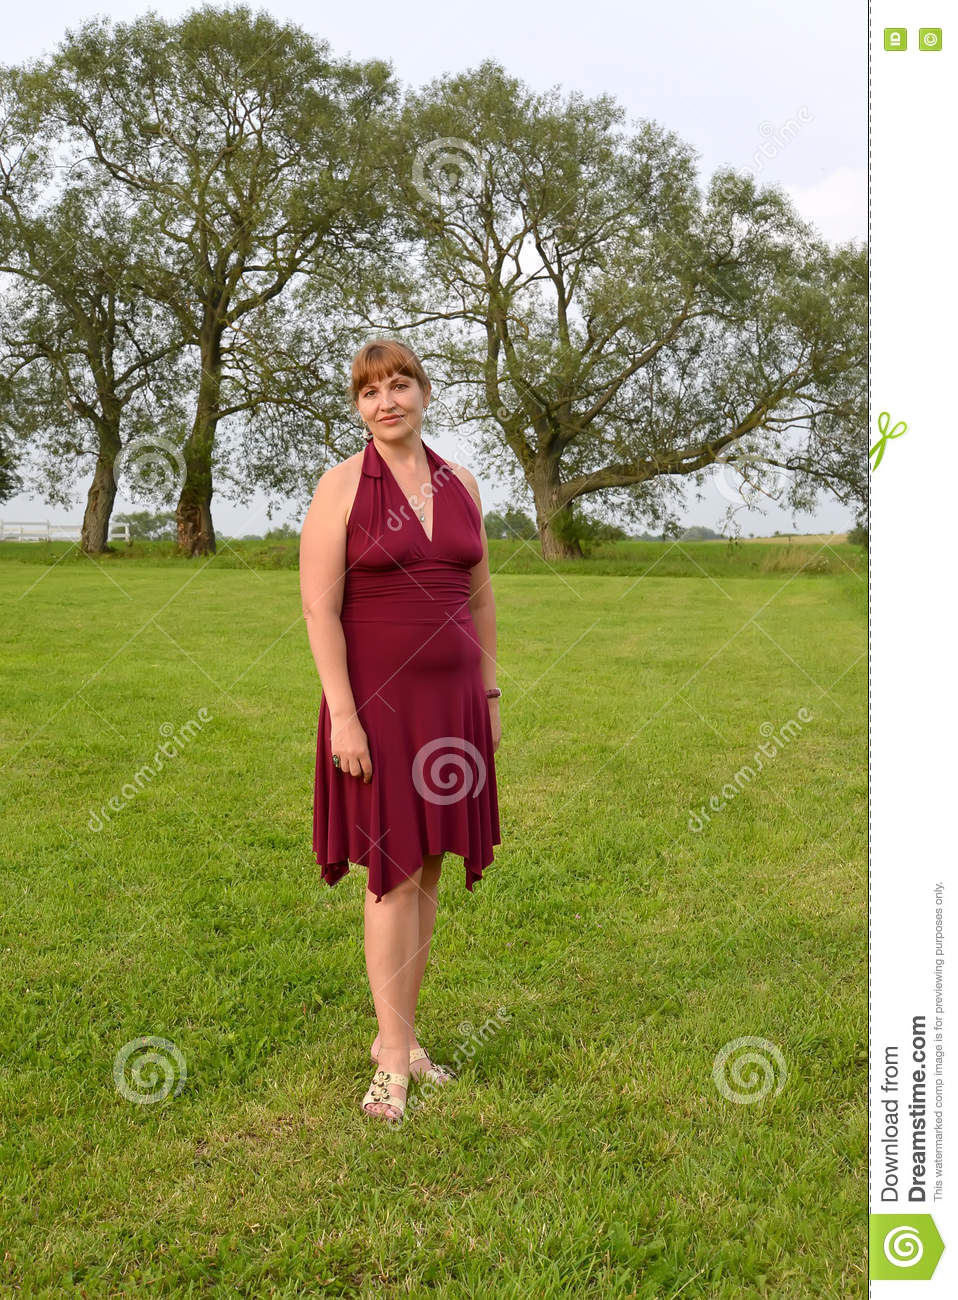 The mature woman costs on a meadow.